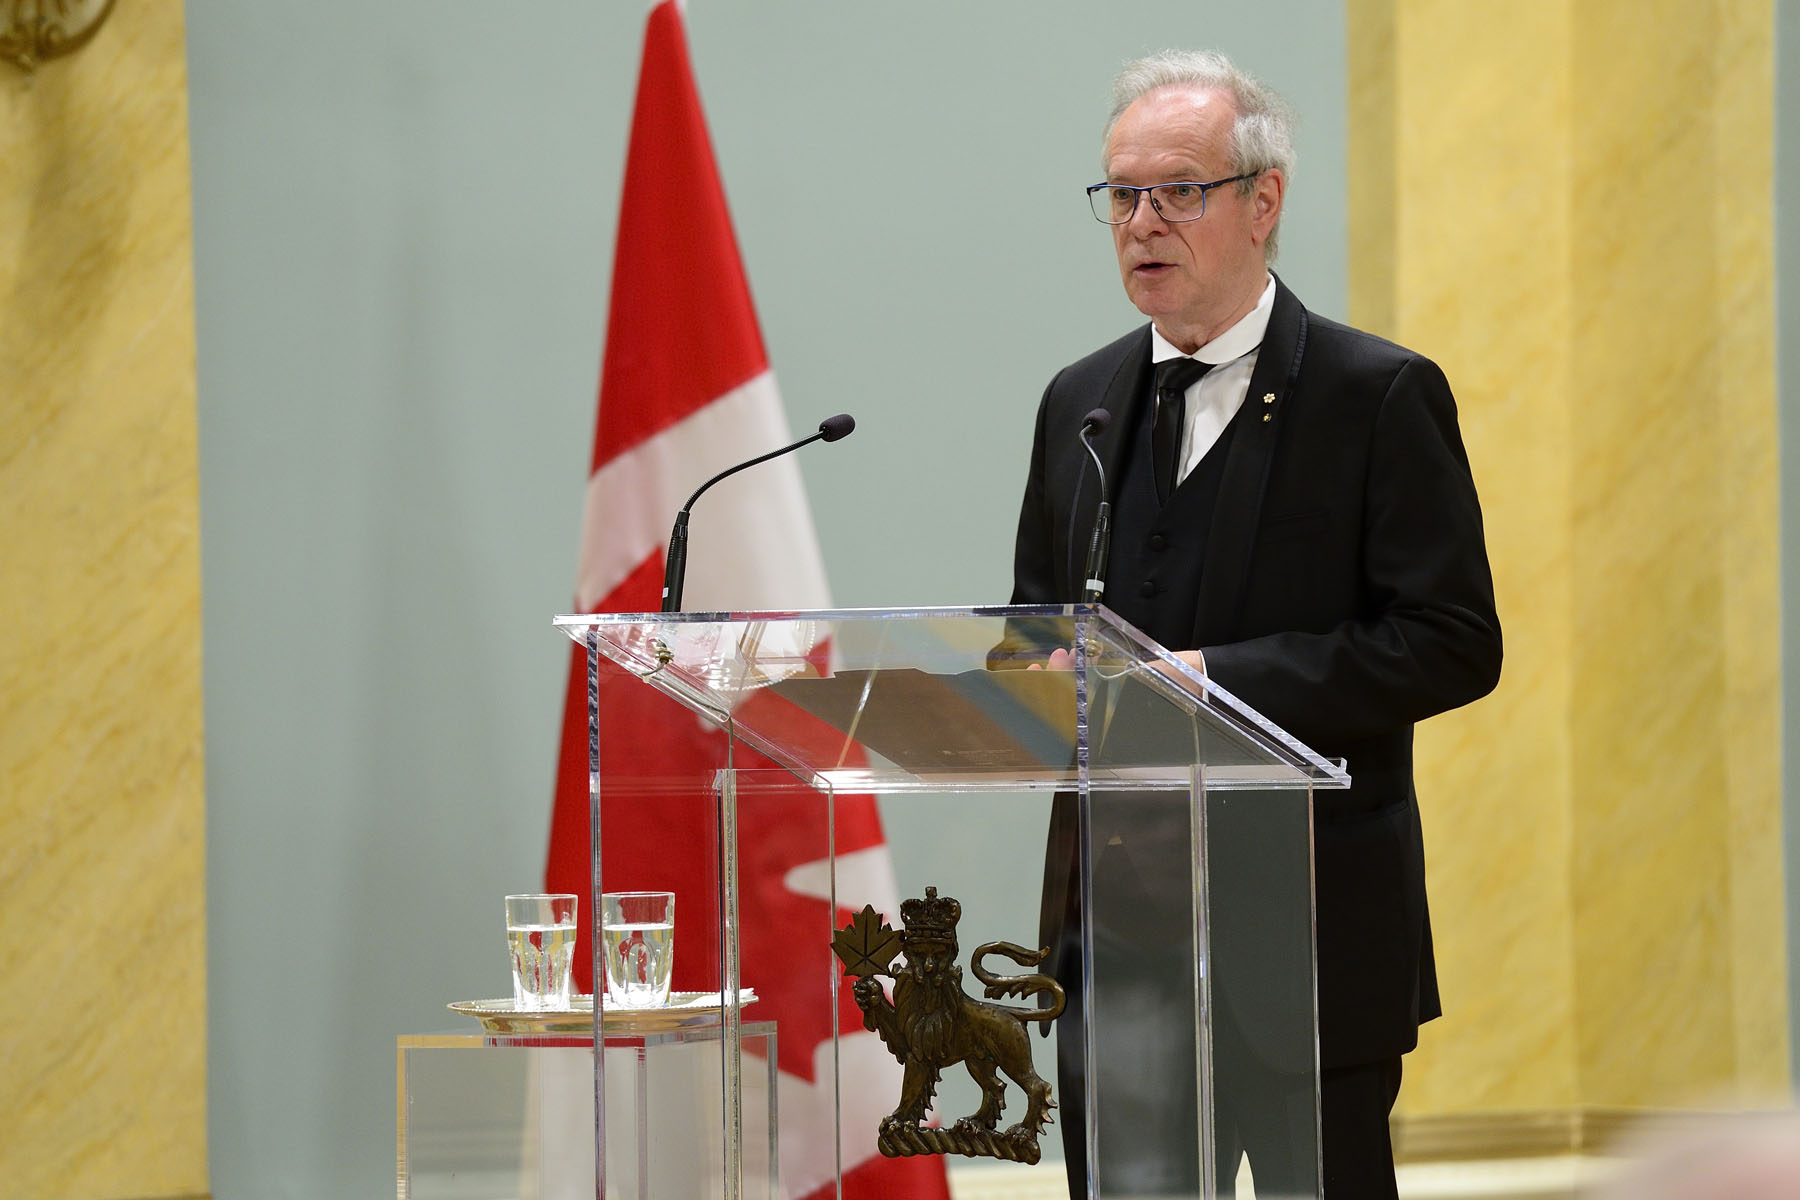 Simon Brault, Director and CEO of the Canada Council for the Arts, delivered remarks. The Canada Council for the Arts administers the Killam Program.